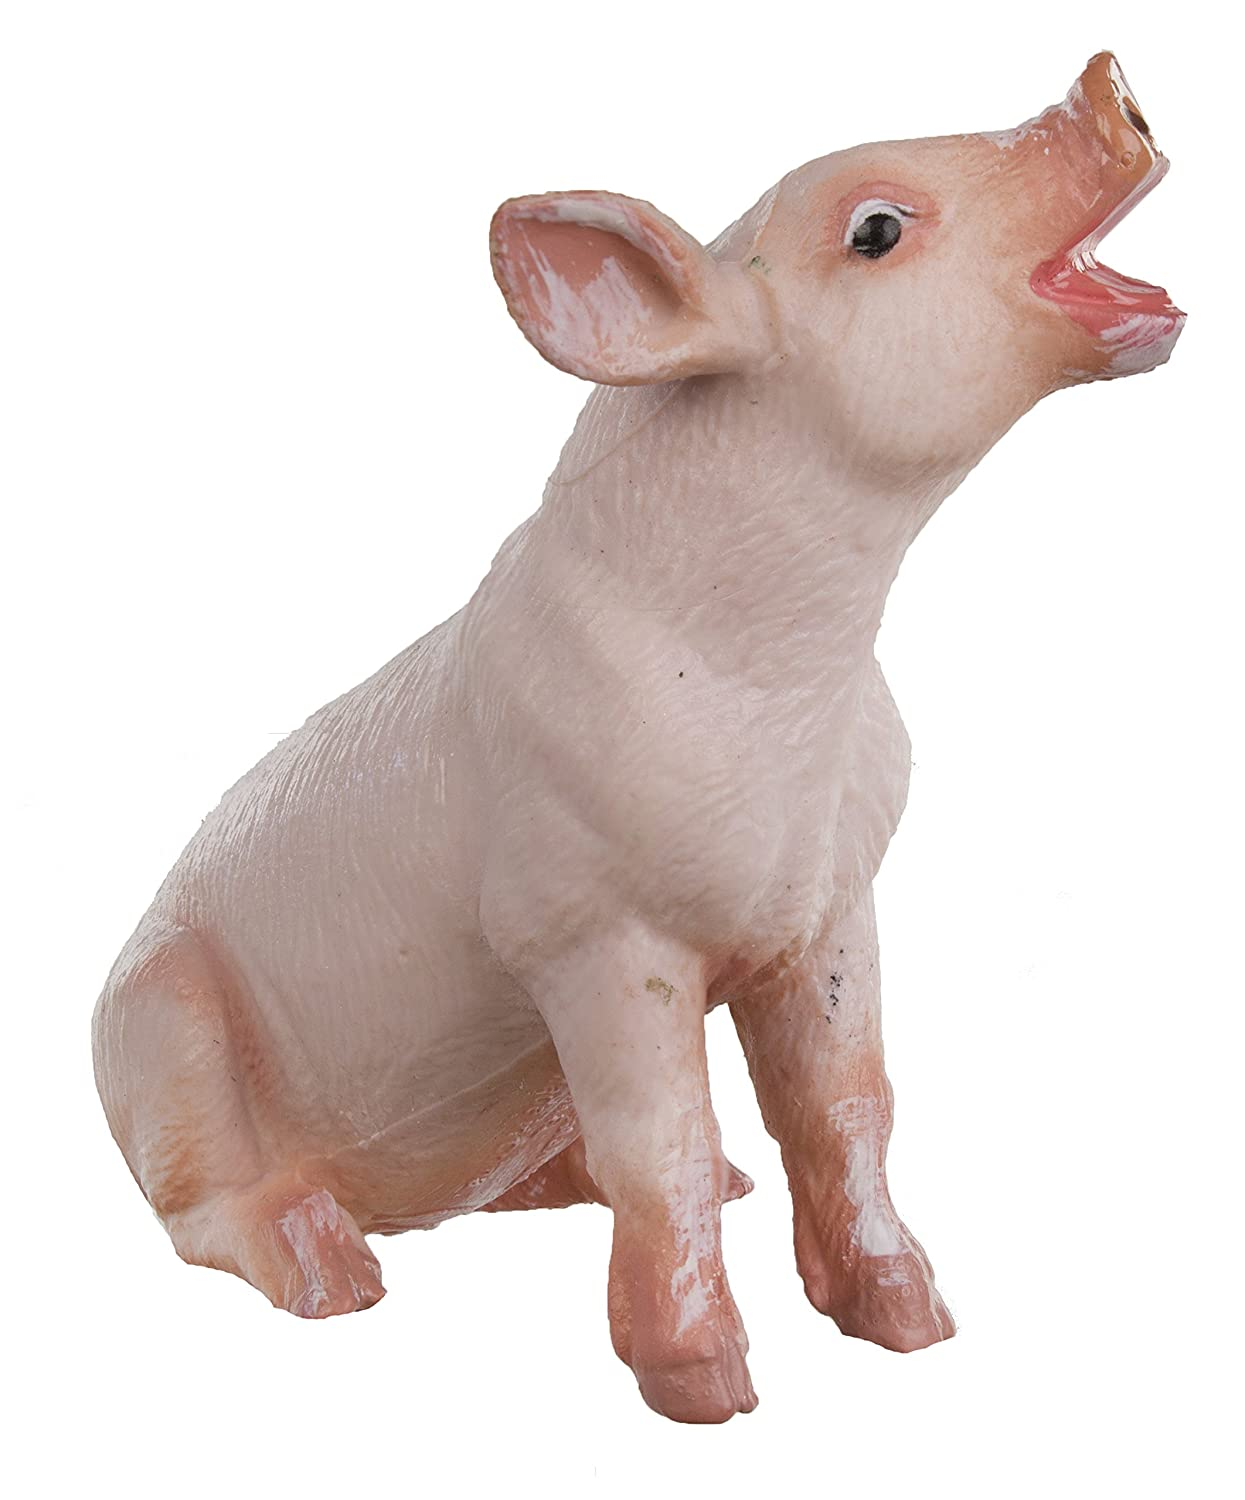 Quality Construction from Safe and BPA Free Materials For Ages 3 and Up 245829 Sitting Piglet Safari Ltd Safari Farm Educational Hand Painted Figurine